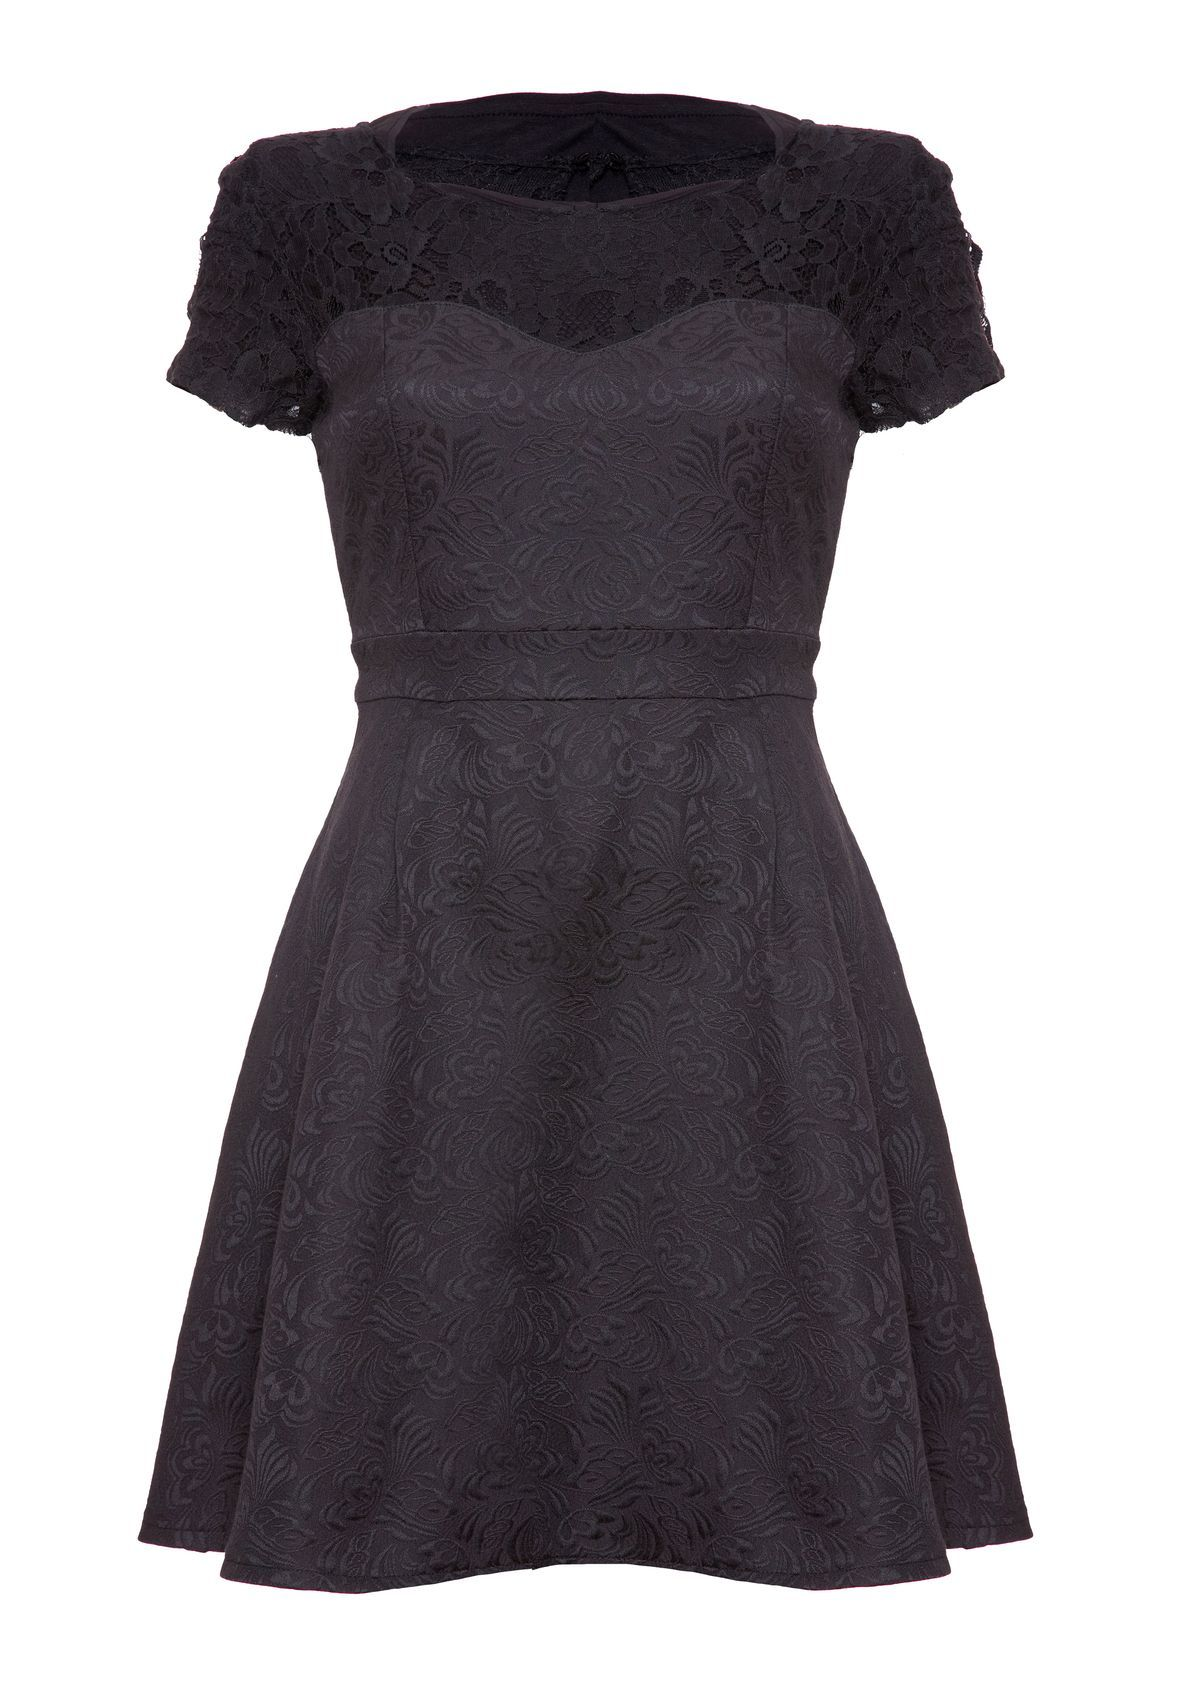 Getting this is teal with black lace dresses pinterest dress